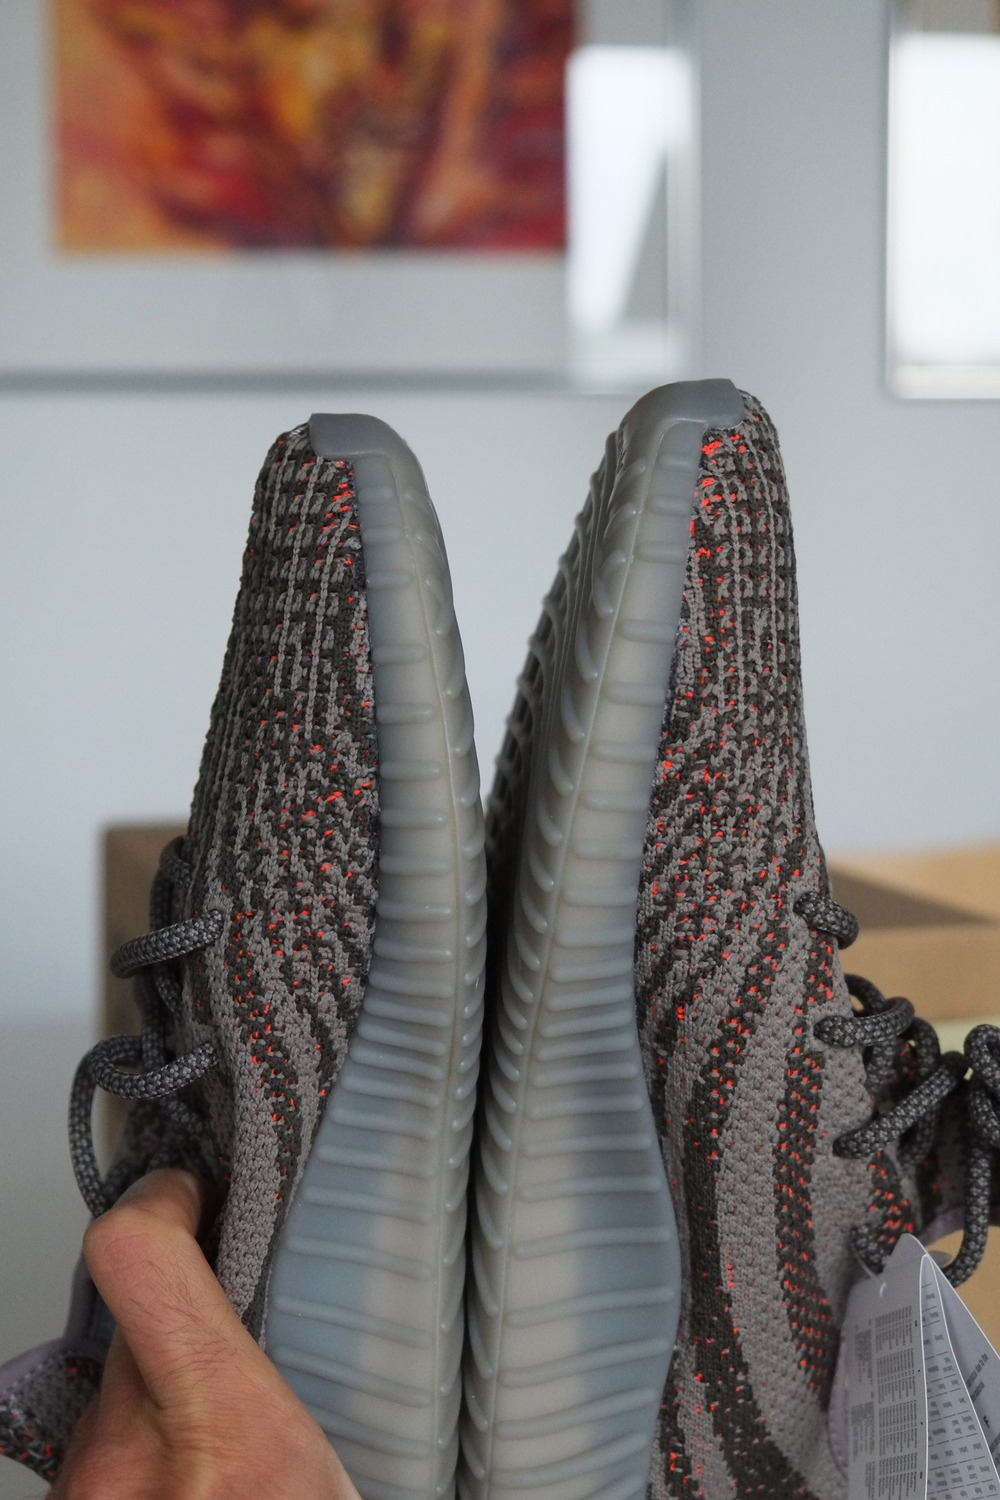 Adidas Yeezy Boost 350 v2 Red BY 9612 (9.5) Shoes